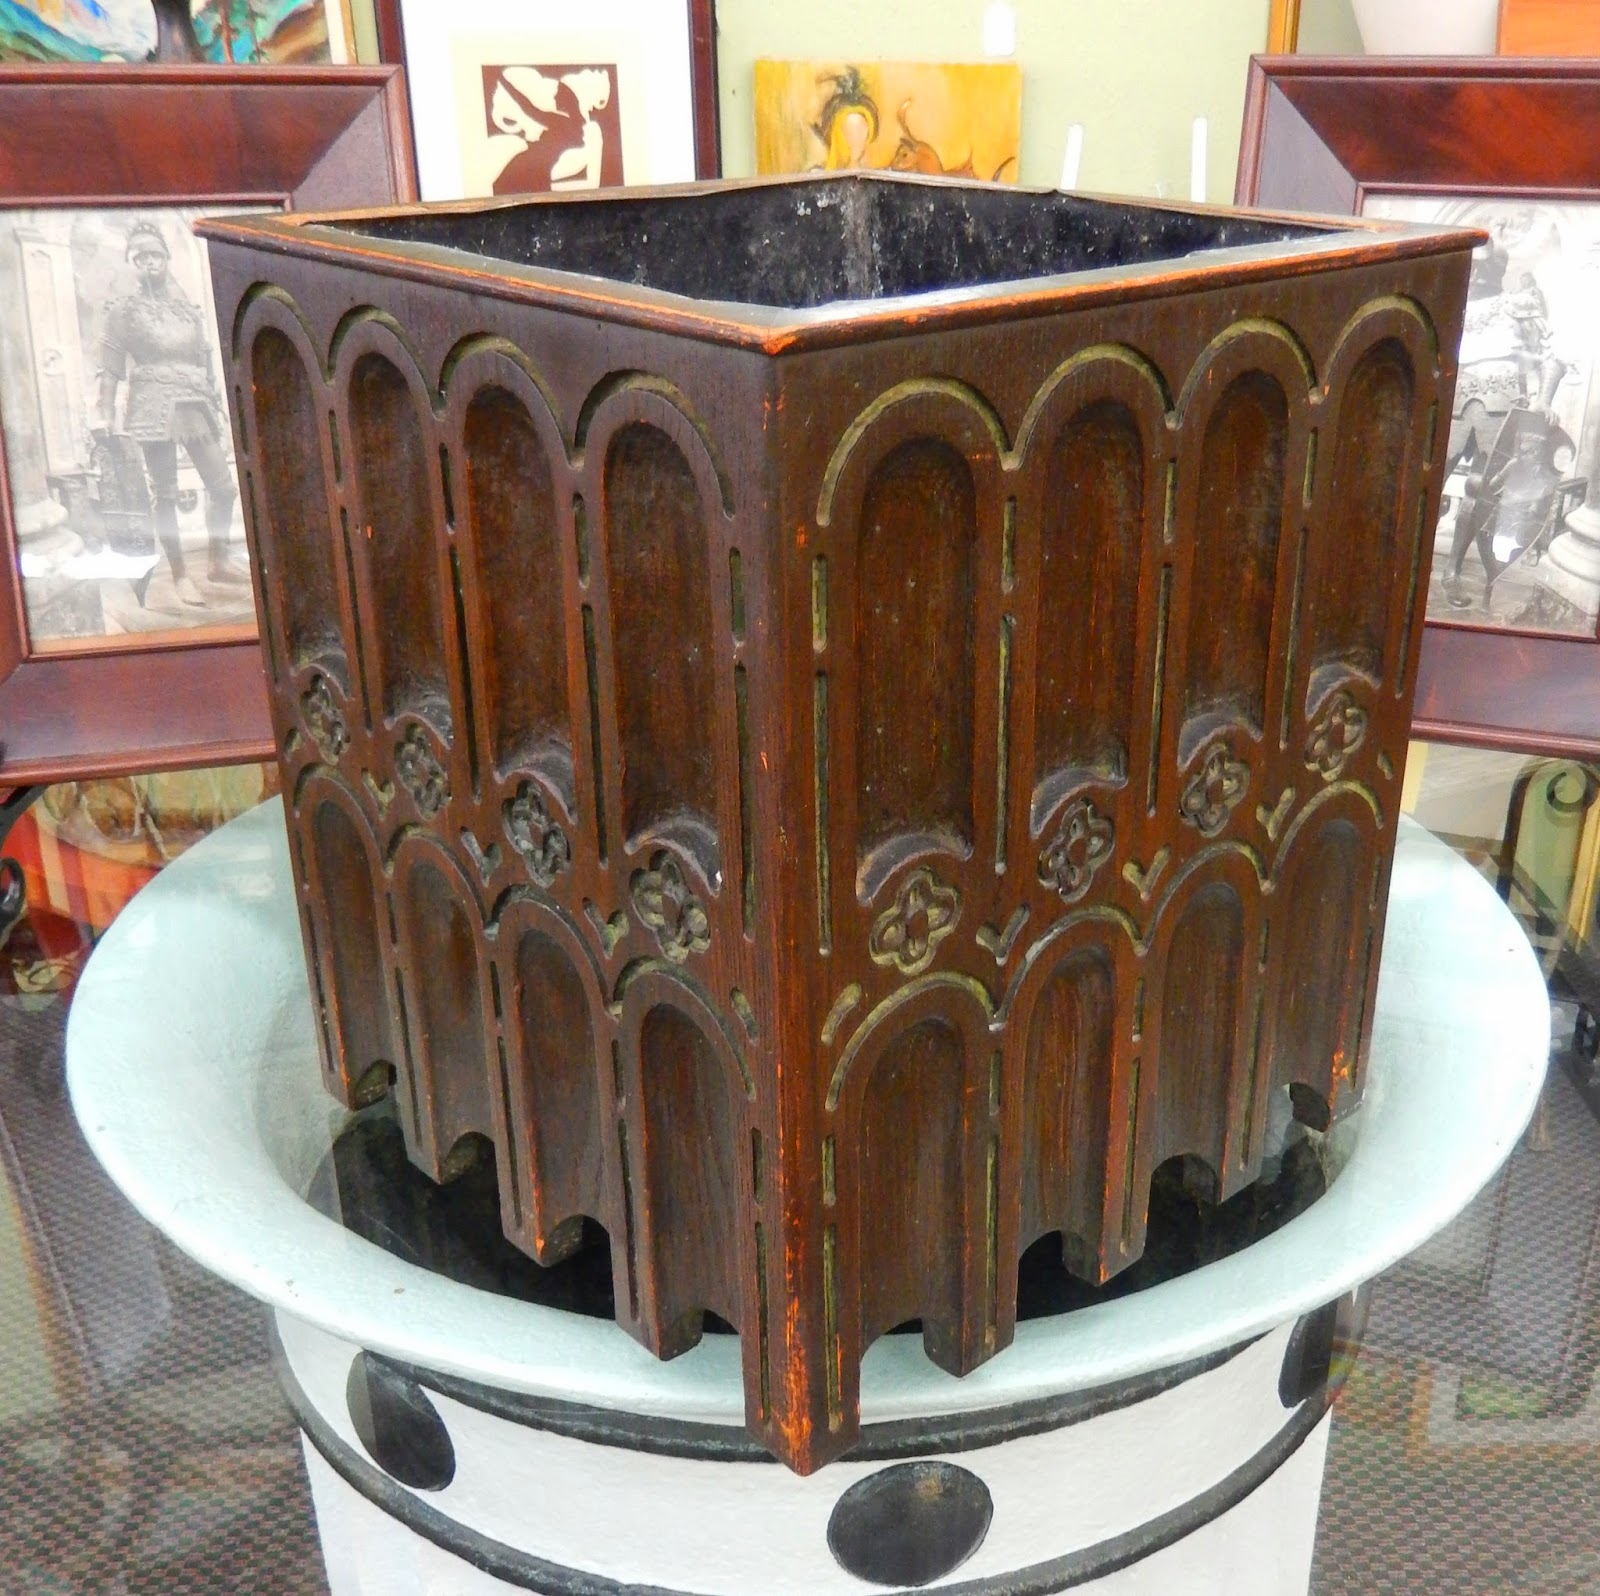 Vintage unusual hand carved gothic arts amp crafts wooden planter box